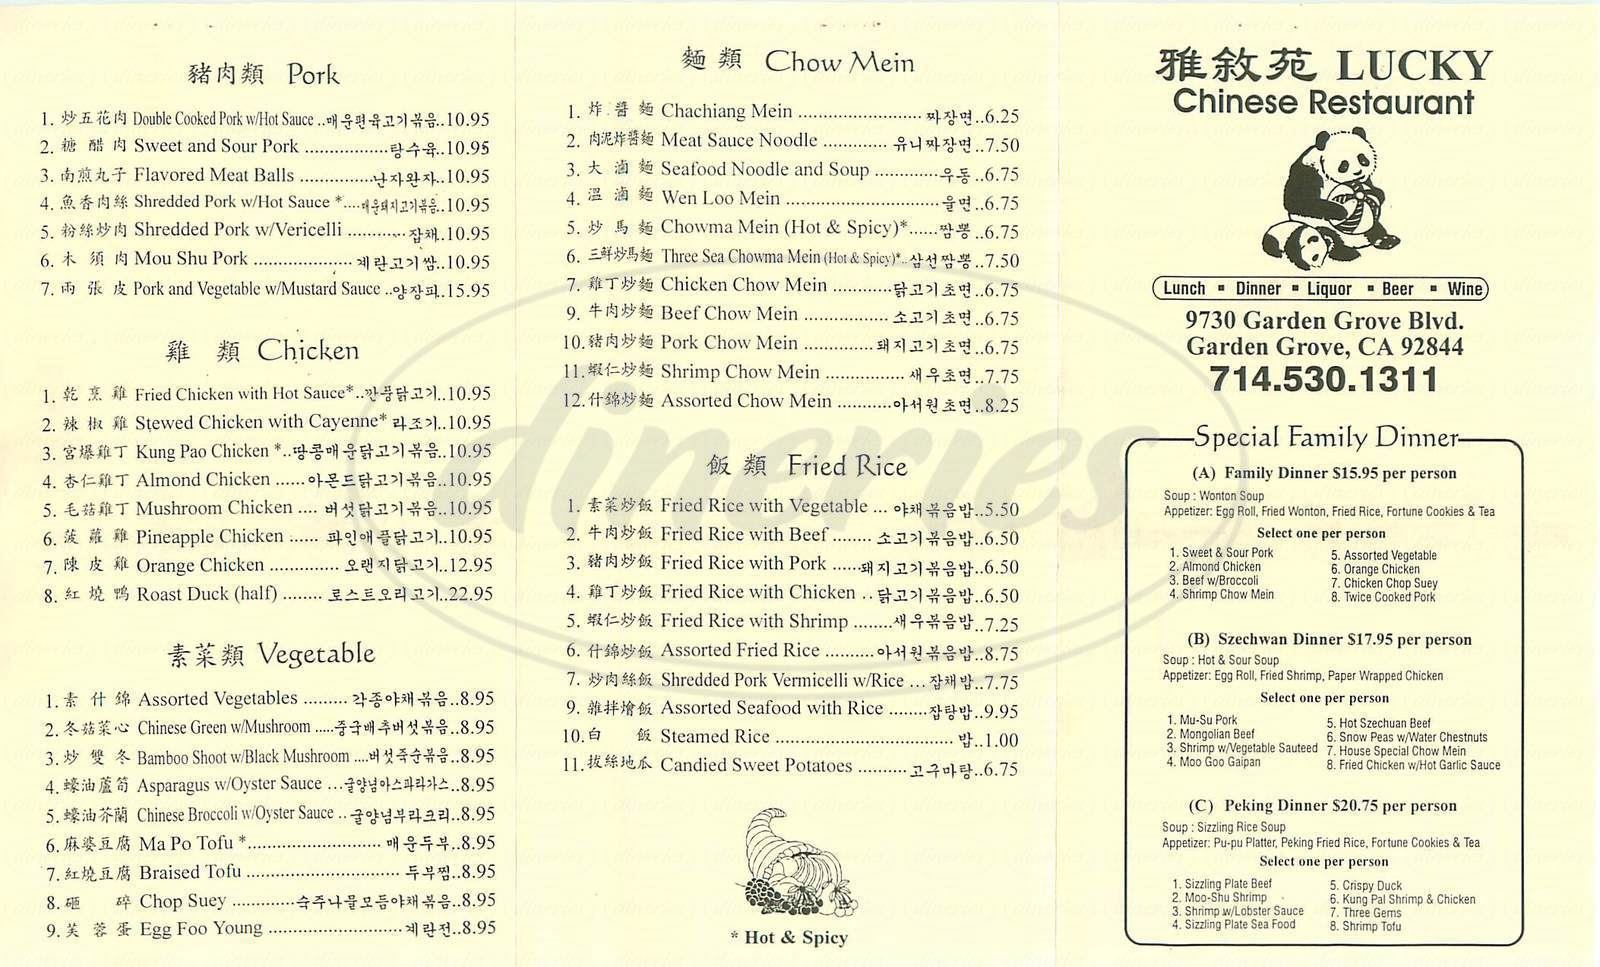 menu for Lucky Chinese Restaurant